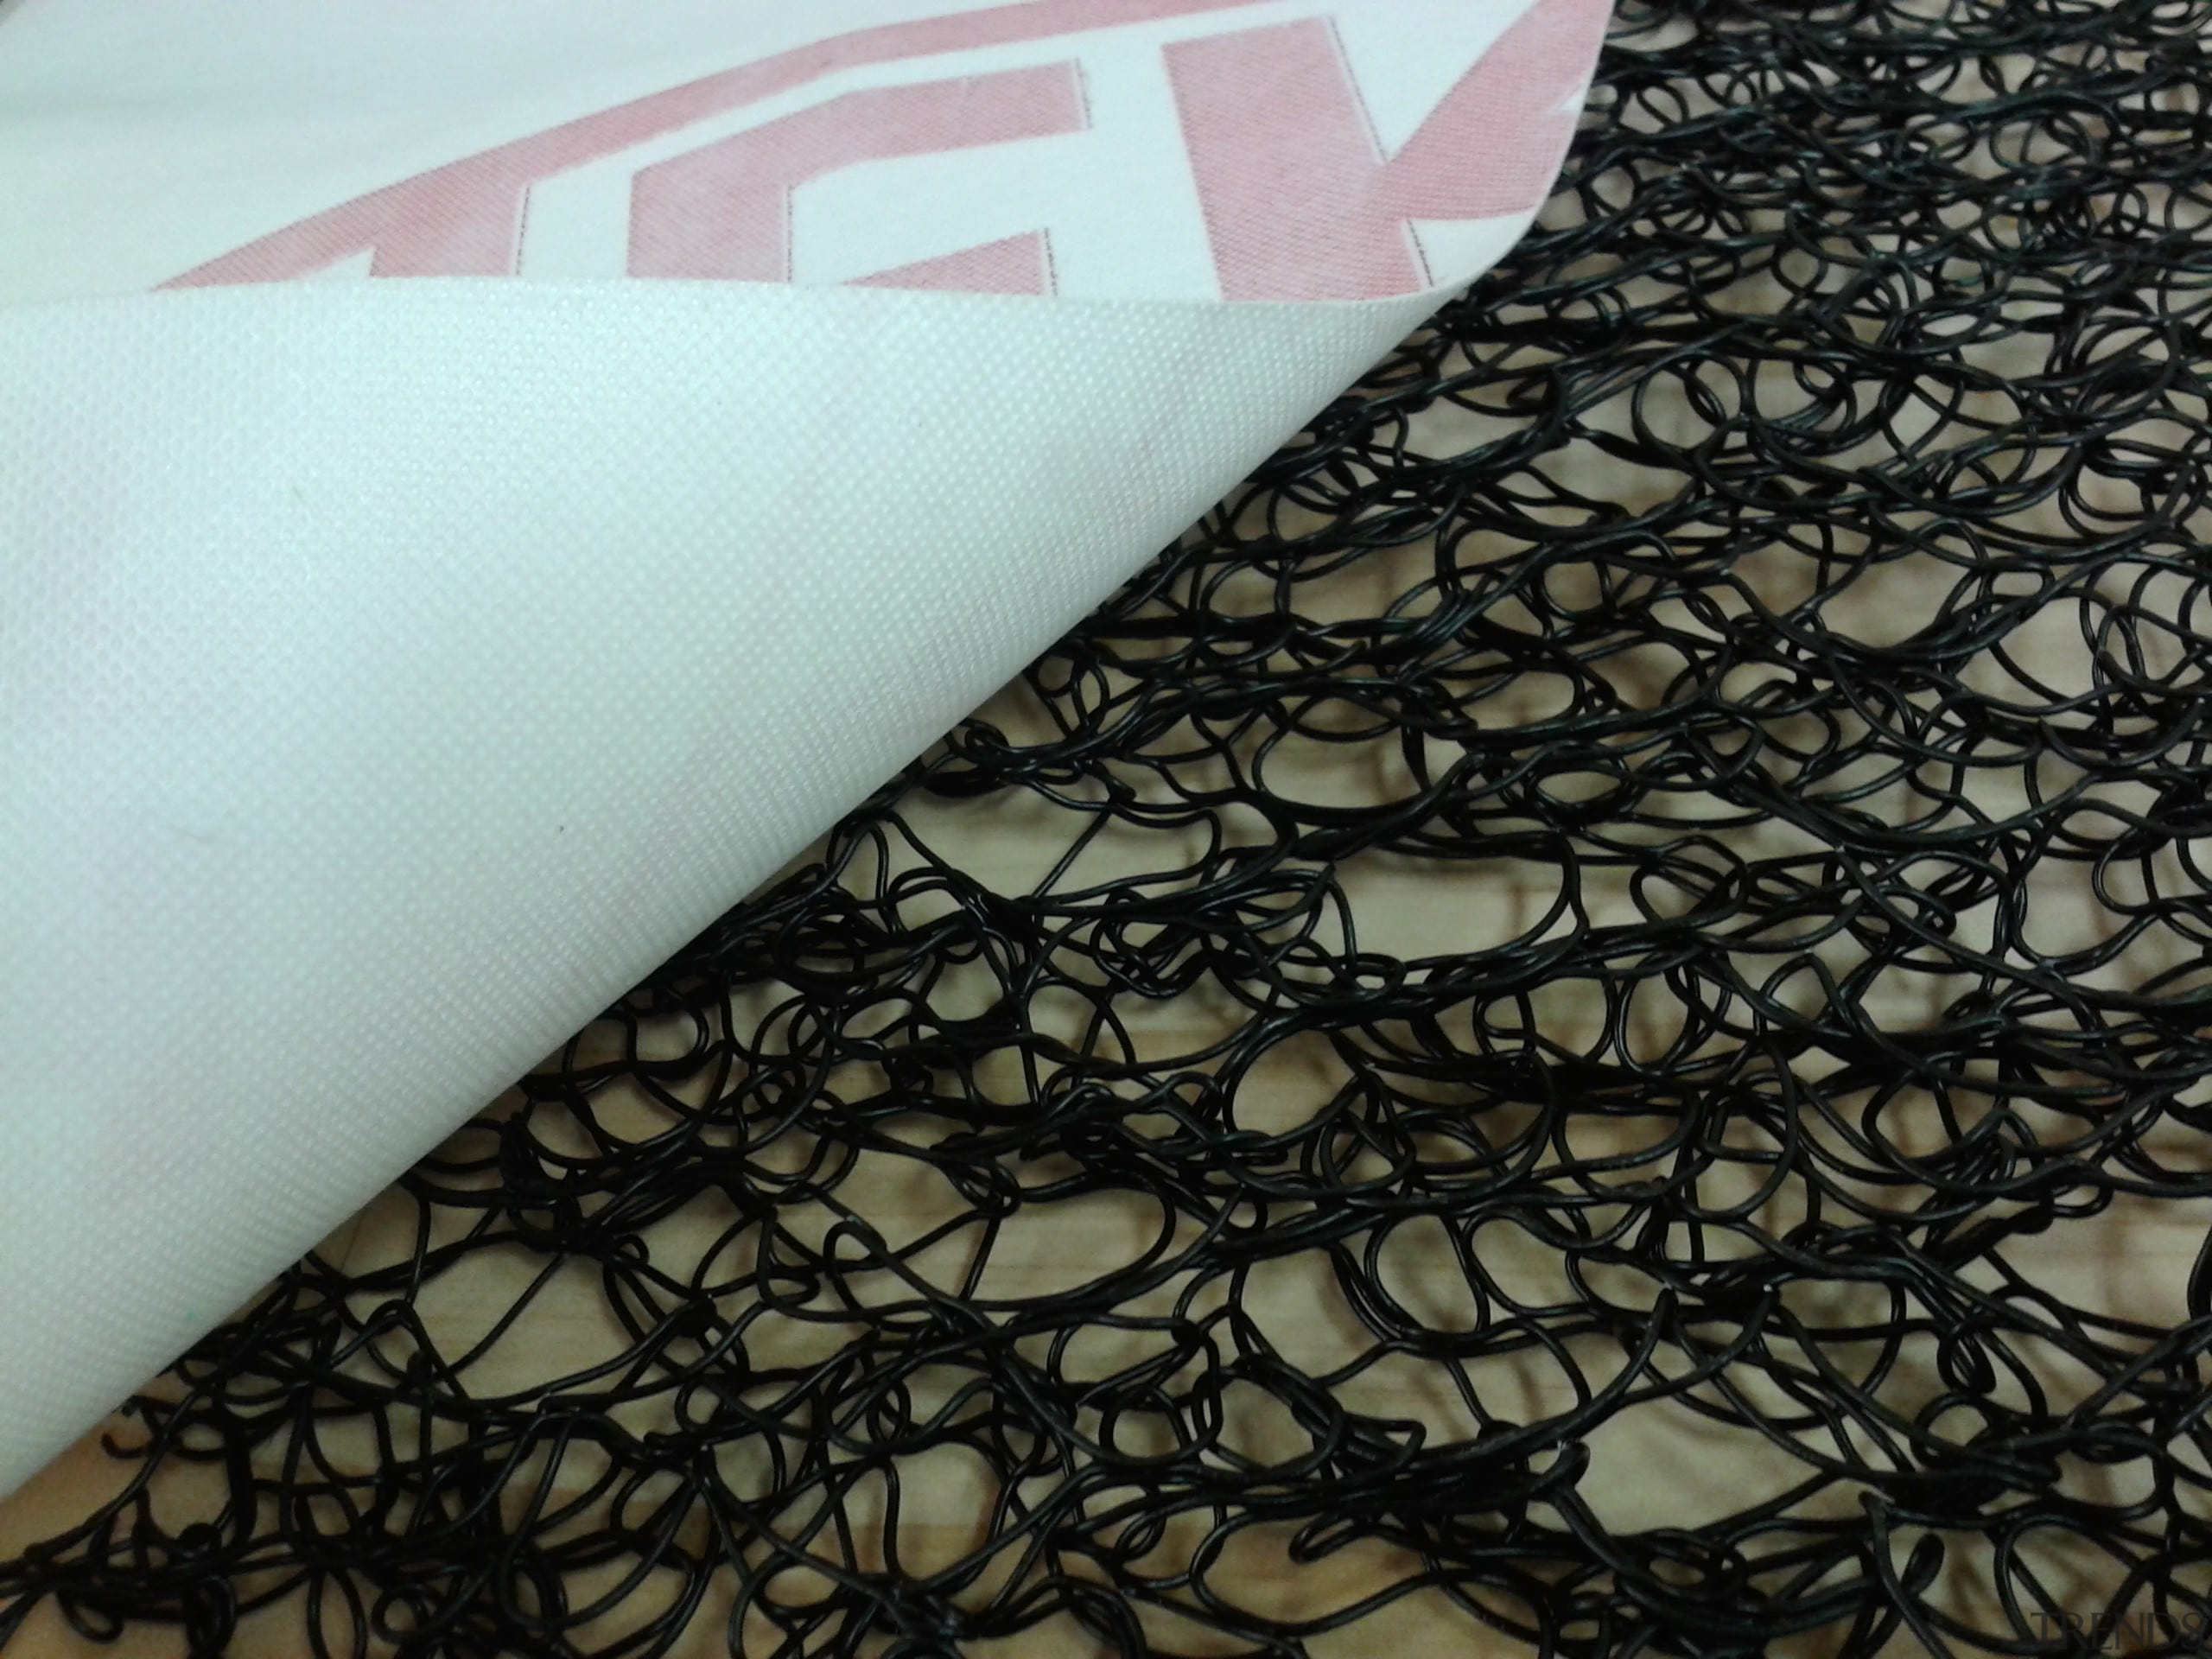 Thermakraft introduced the first synthetic roofing underlay in material, pattern, textile, black